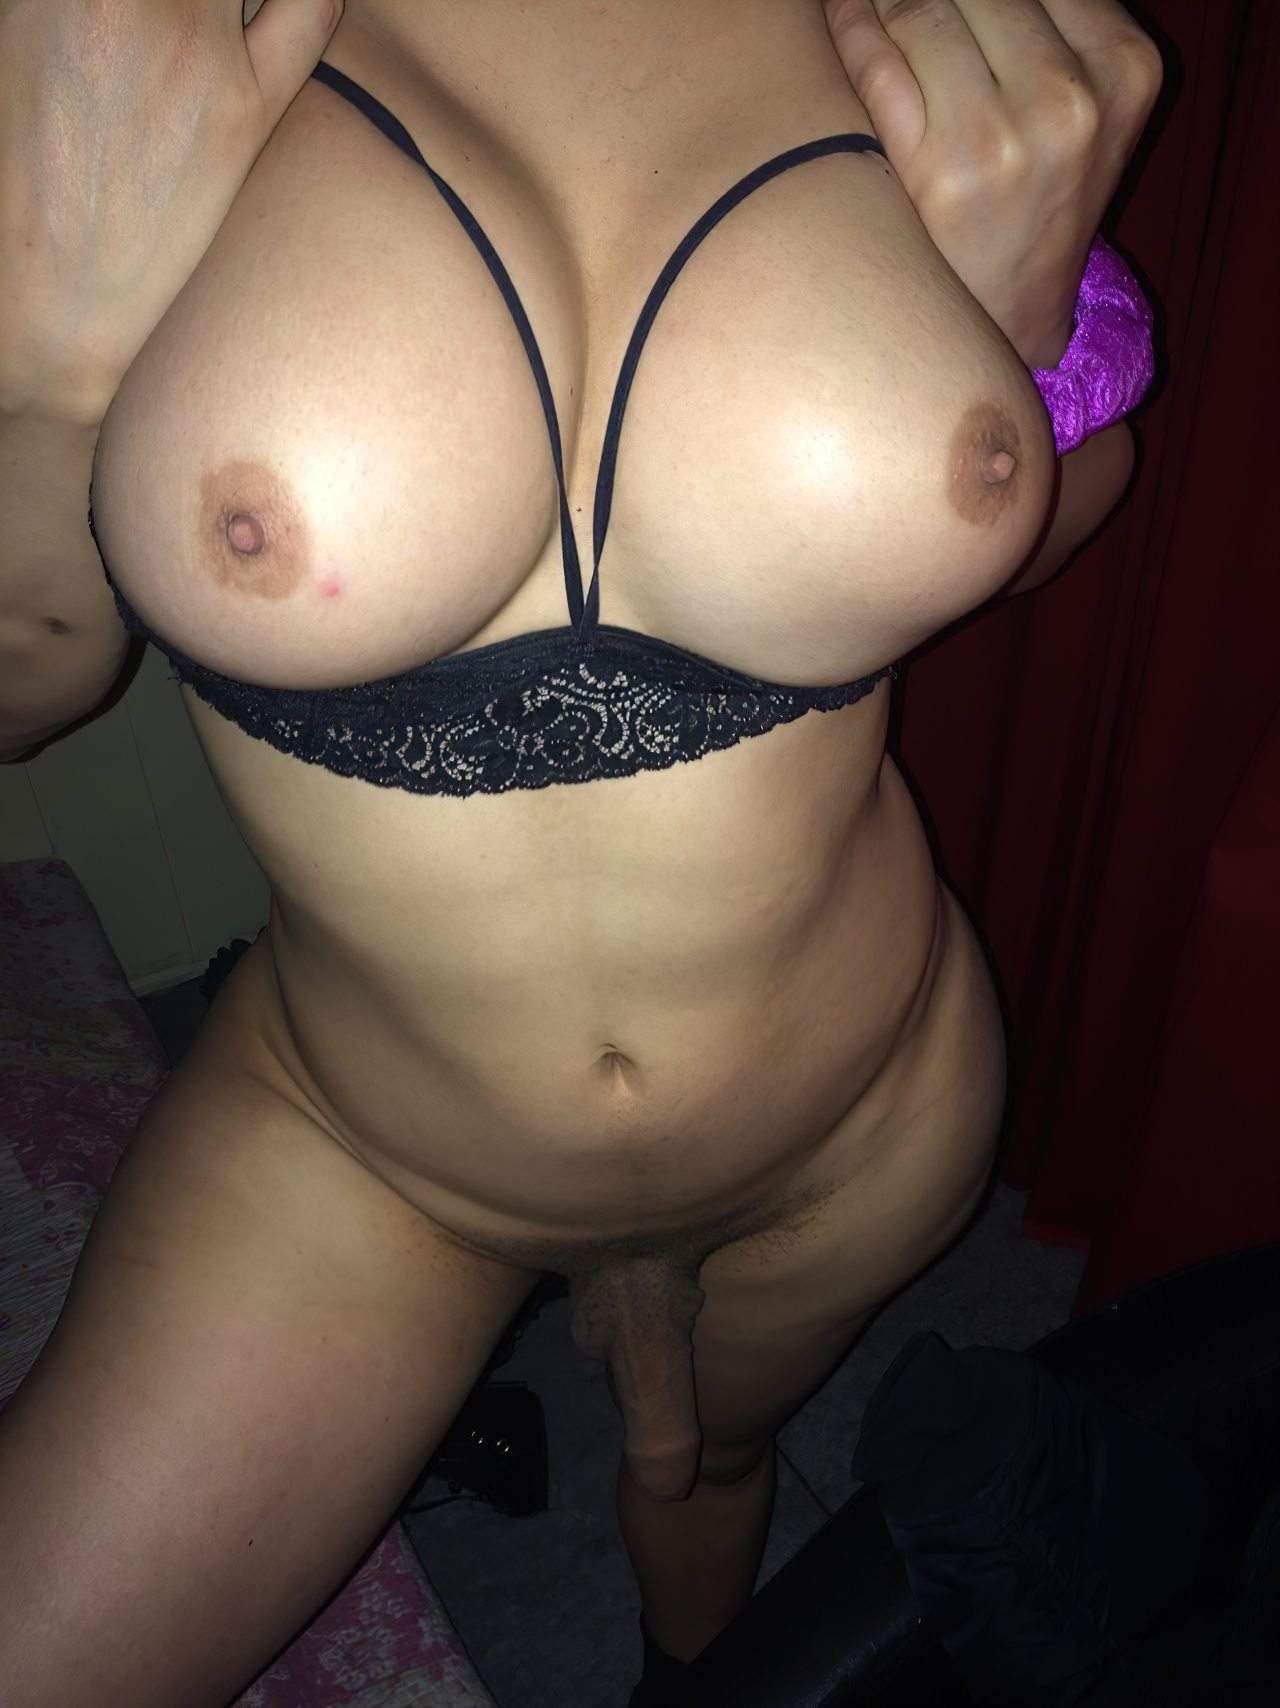 Fotos de Travestis (28)